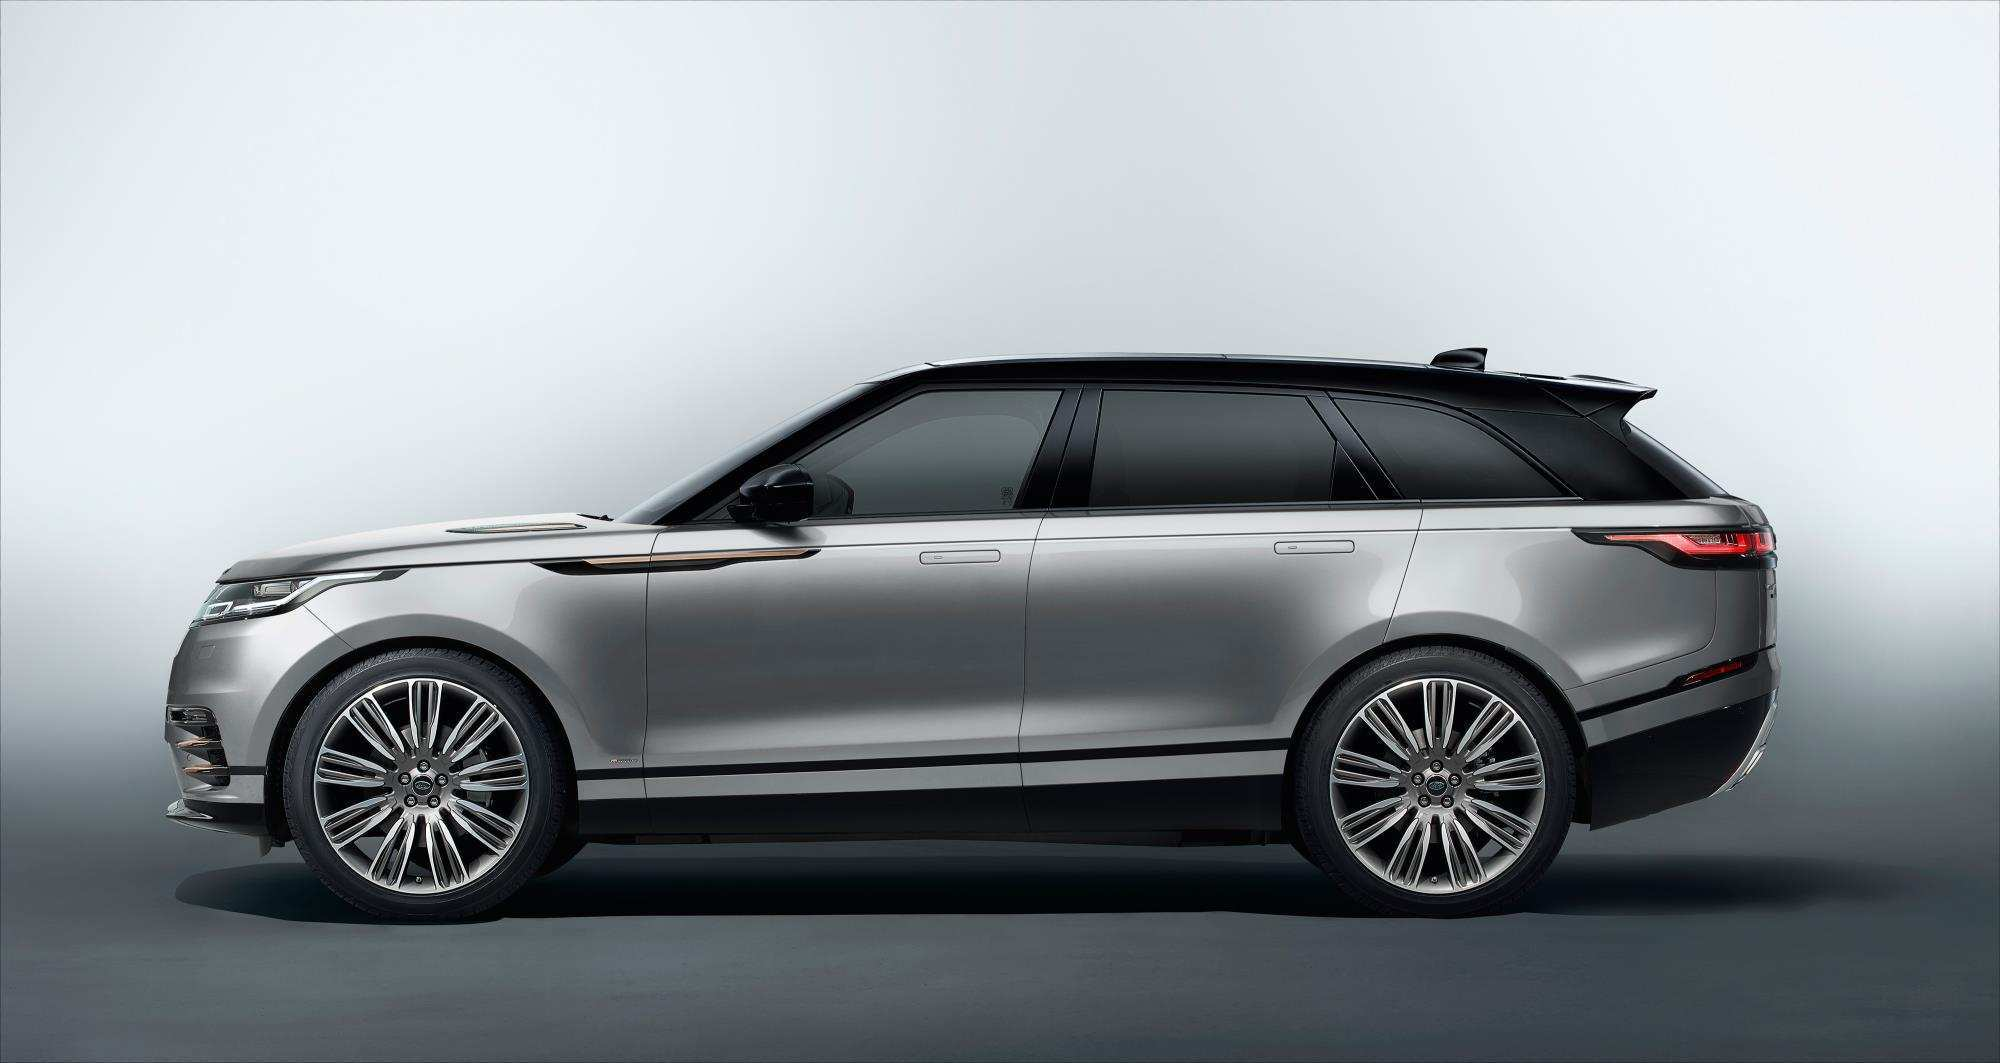 27 New Land Rover Electric 2020 Rumors